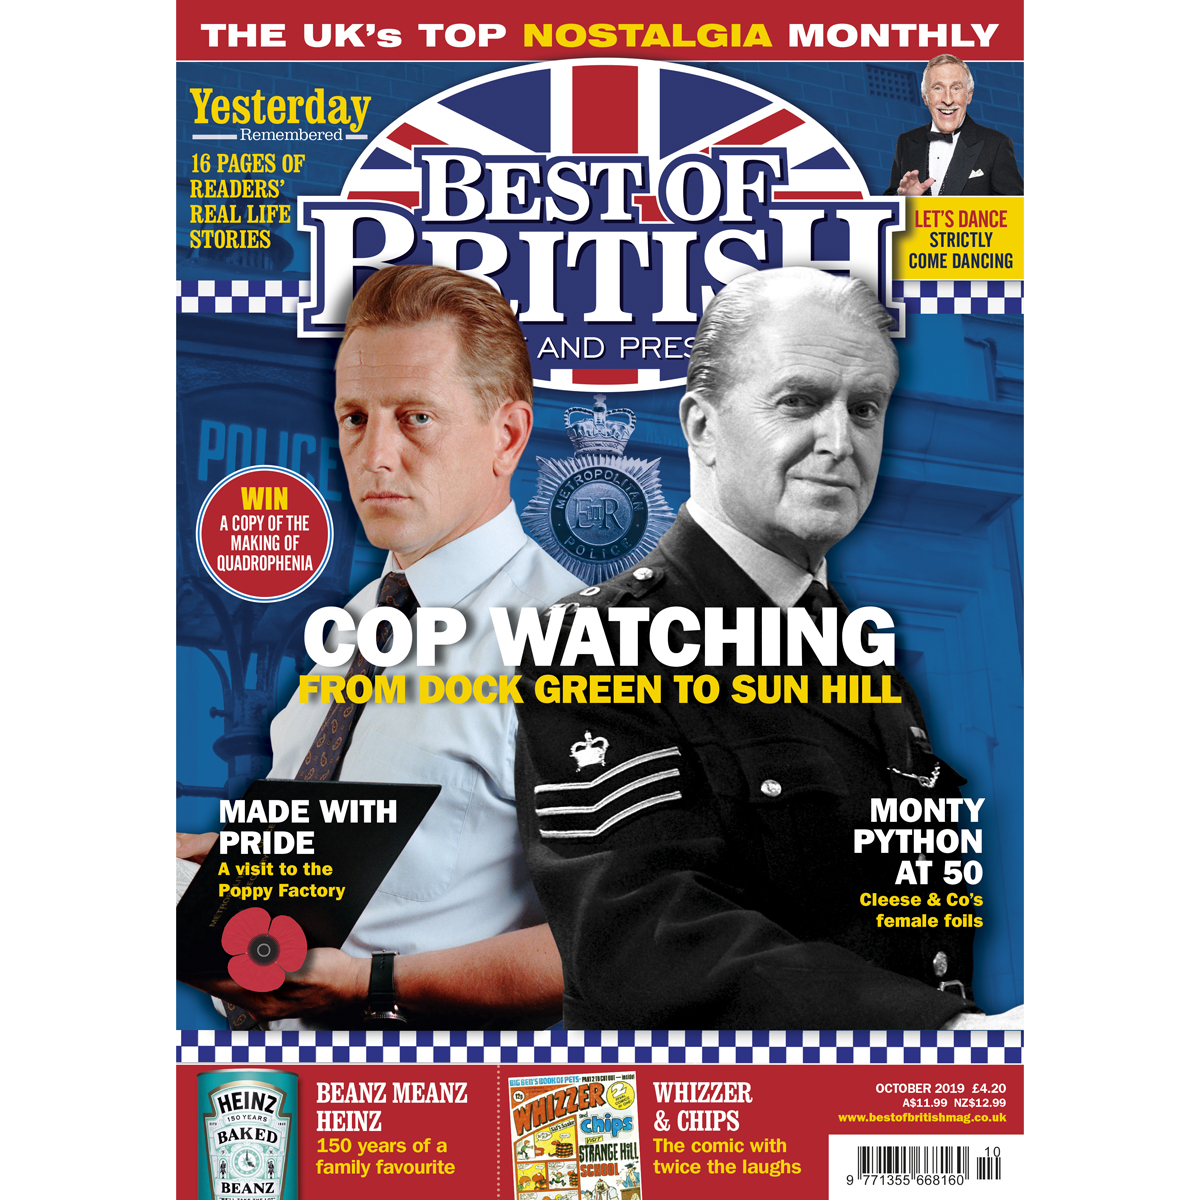 Issue 279 - OCT 2019